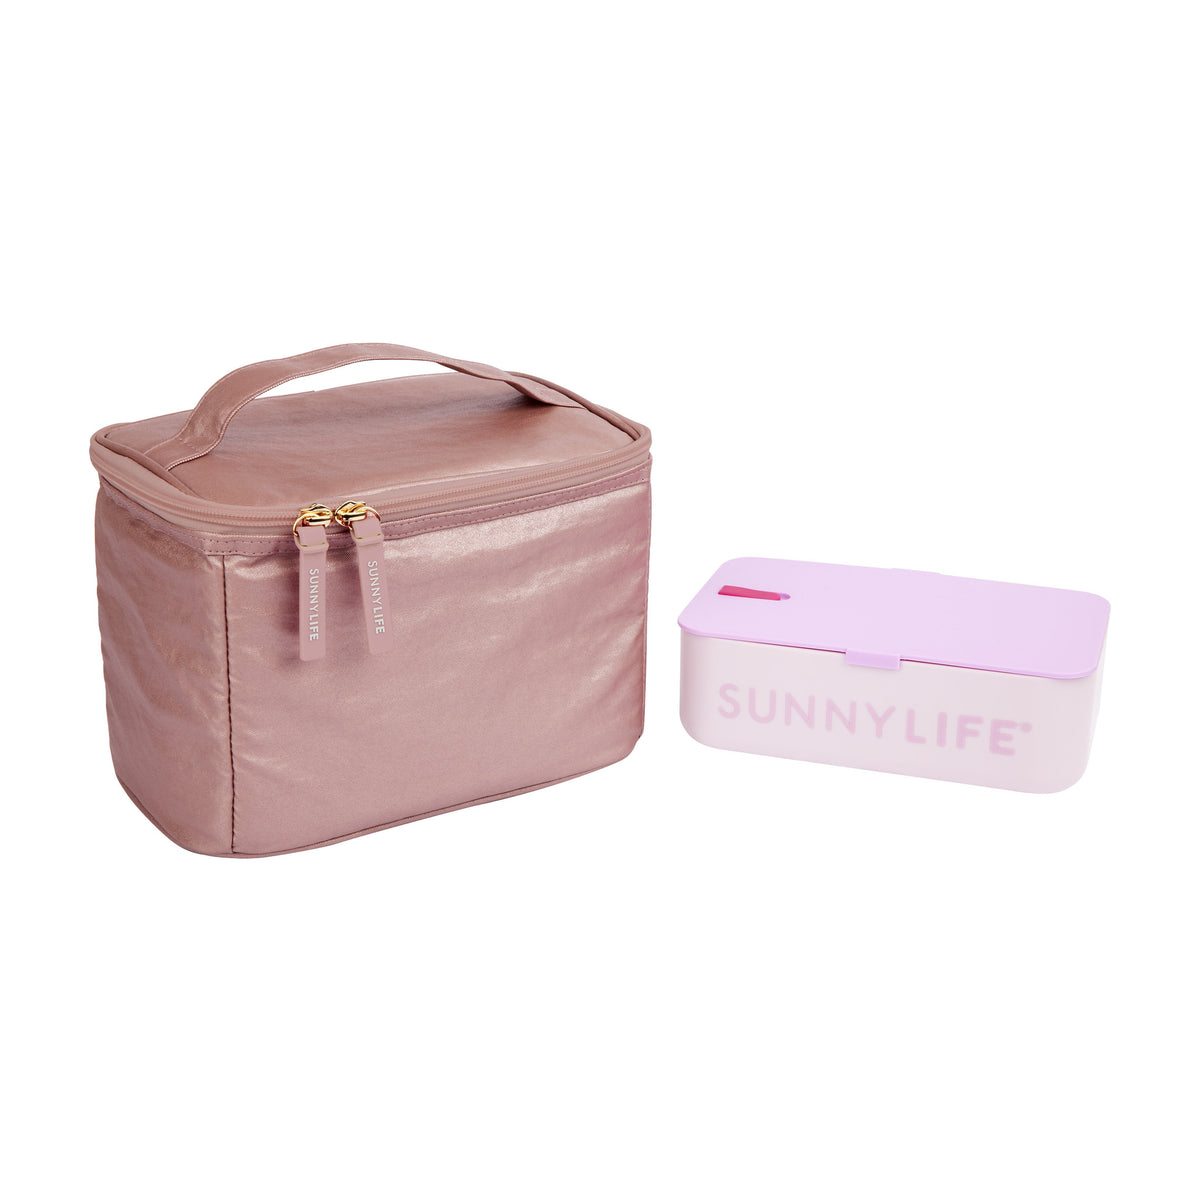 Sunnylife | Lunch Bag | Electric Bloom Pink